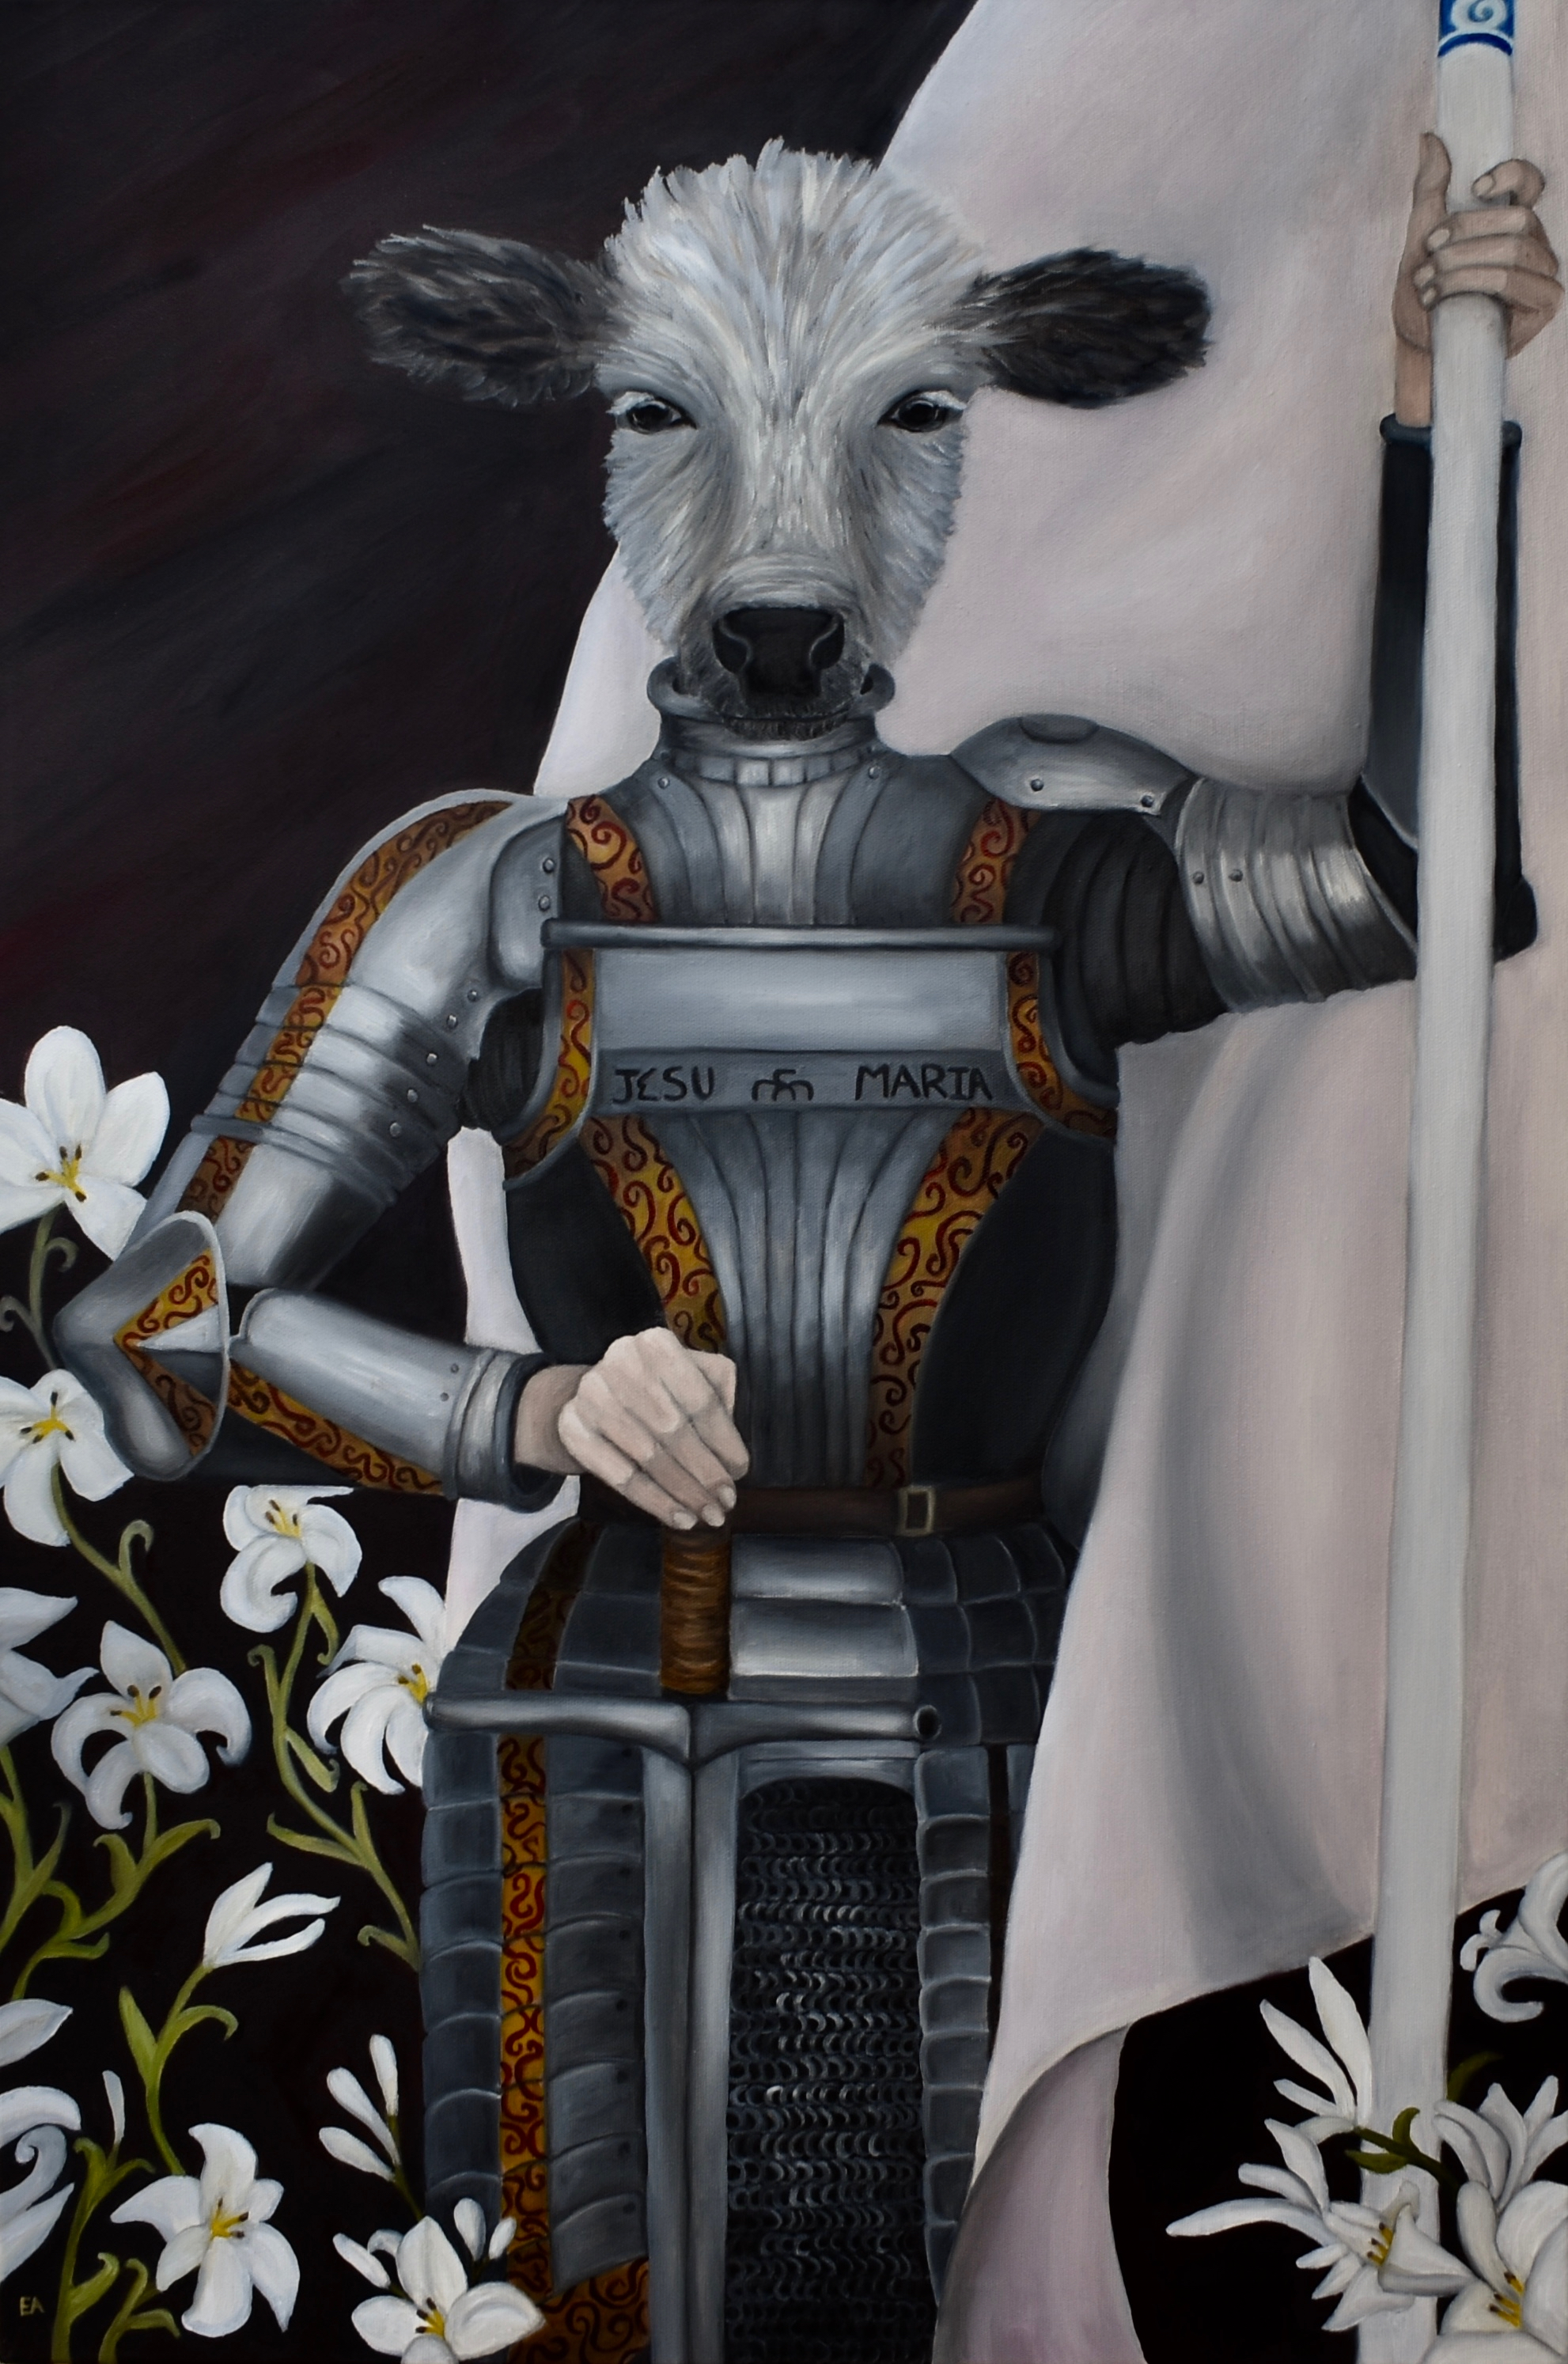 """""""The Maid of Orleans"""" 24x36 oil on canvas.  Joan of Arc (1412-1431), also known as """"The Maid of Orleans,"""" was born a peasant. Her family lived in an isolated area of Eastern France that remained loyal to the French crown during the 100 years war. At 16 Joan claimed to have seen holy visions, instructing her to support Charles Vll of France and help defeat the English. So Joan set out to get an audience with the King and convince him that she could help save France. She succeeded in getting her audience and managed to become a figurehead of the French forces.  It is absolutely astonishing to me that a 16 year old illiterate farm girl was not only able to convince a monarch that God spoke to her, she was able to convince an entire army that God was on their side when she rode with them. Indeed the tide began to turn for the French when Joan came on the scene. For they believed they now had God on their side.  The English despised Joan, it is said that English soldiers would shout """"go back to your cows!"""" with great vitriol when they saw her with her flag on the battlefield. When the English captured Joan in 1430 they set their minds to having her executed. They attempted to charge her with Heresy, but she was suprisingly shrewd in the face of their inquisitions.  The court became frustrated and settled on a cross-dressing charge. Joan had chosen to dress in men's clothing, presumably to protect herself from men. At the time this was an executionable offense. So Joan was burned at the stake and then burned twice more to prove that she was no holy woman. She was 19.  It is interesting to speculate about Joan. Some scholars now say she might have been epileptic or schizophernic. She was prone to outbursts and visions. Things that could be explained away by modern medicine.  Regardless, Joan, a teenage girl who couldn't read or write, a humble girl indeed, managed to convince a king and an entire army that she was a messenger of God. And that's pretty impressive, regardles"""